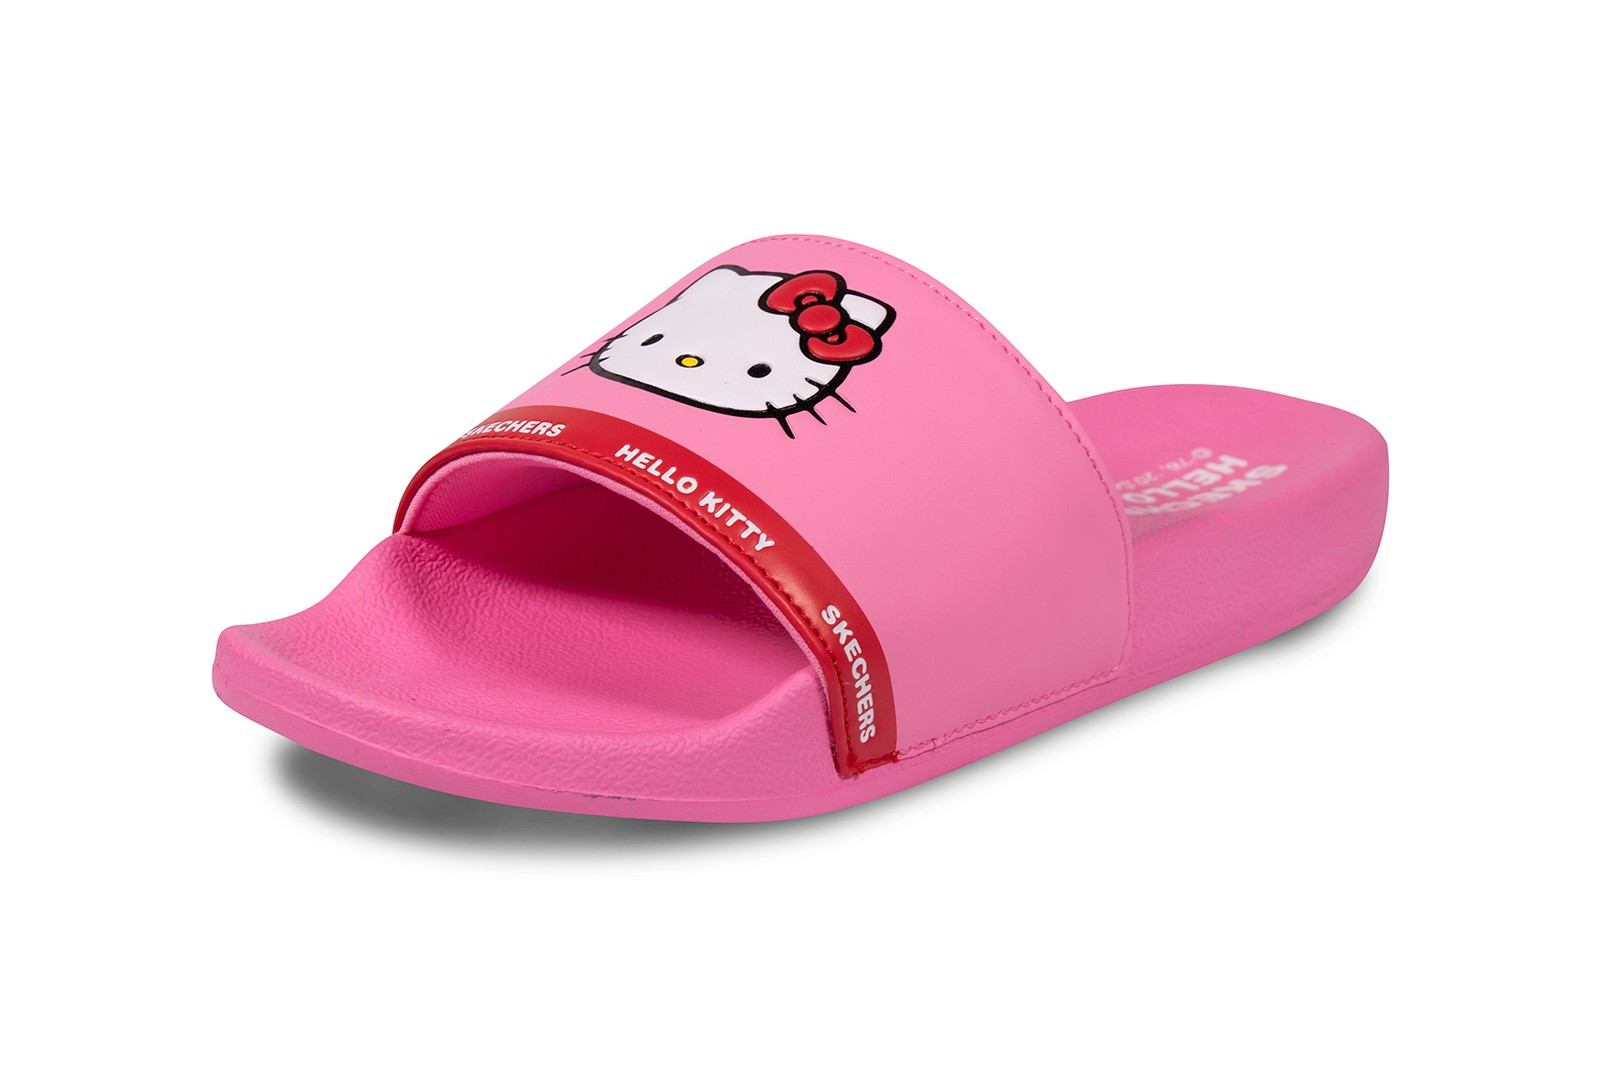 Skechers x Hello Kitty Collaboration Collection Sneakers Energy Pink